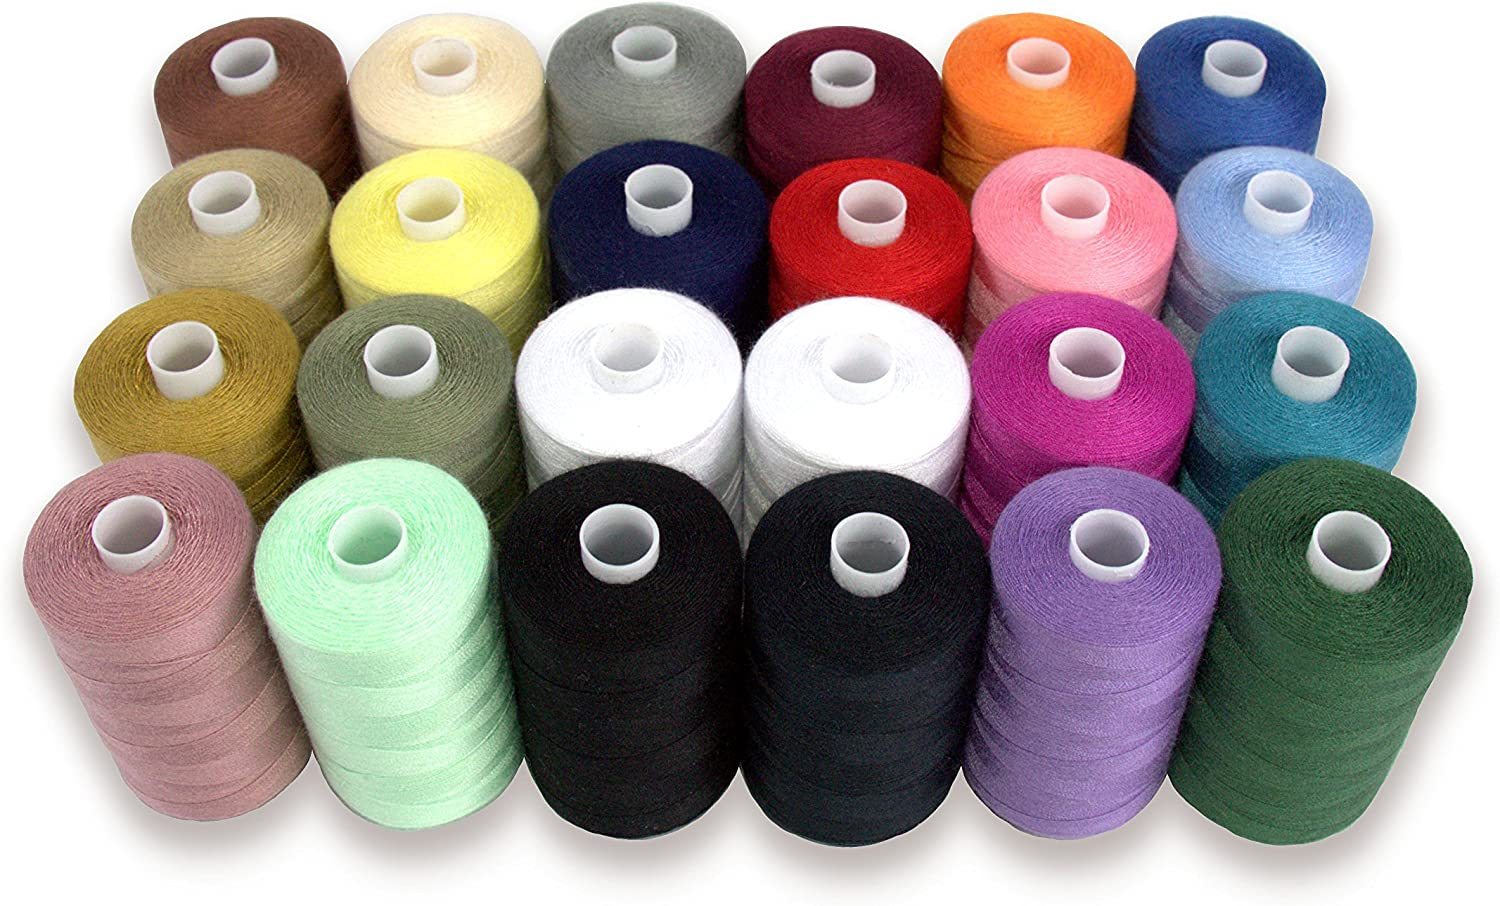 KEIMIX Polyester Sewing Threads 24 Colors 550 Yards Each Spools Sewing kit for Hand /& Machine Sewing